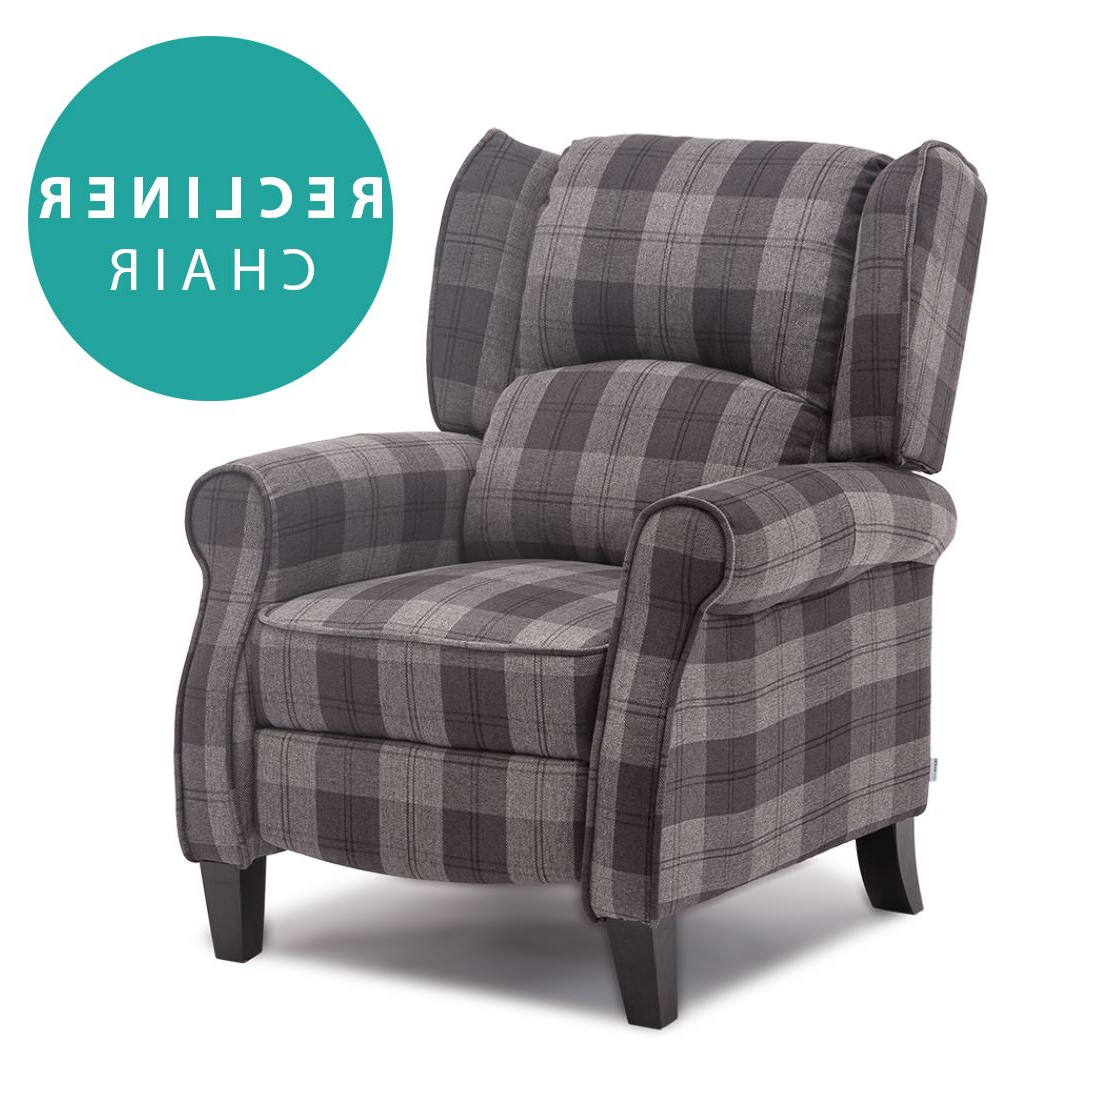 Best And Newest Eaton Wing Back Fireside Check Fabric Recliner Armchair Sofa Chair Intended For Sofa Chair Recliner (Gallery 10 of 20)